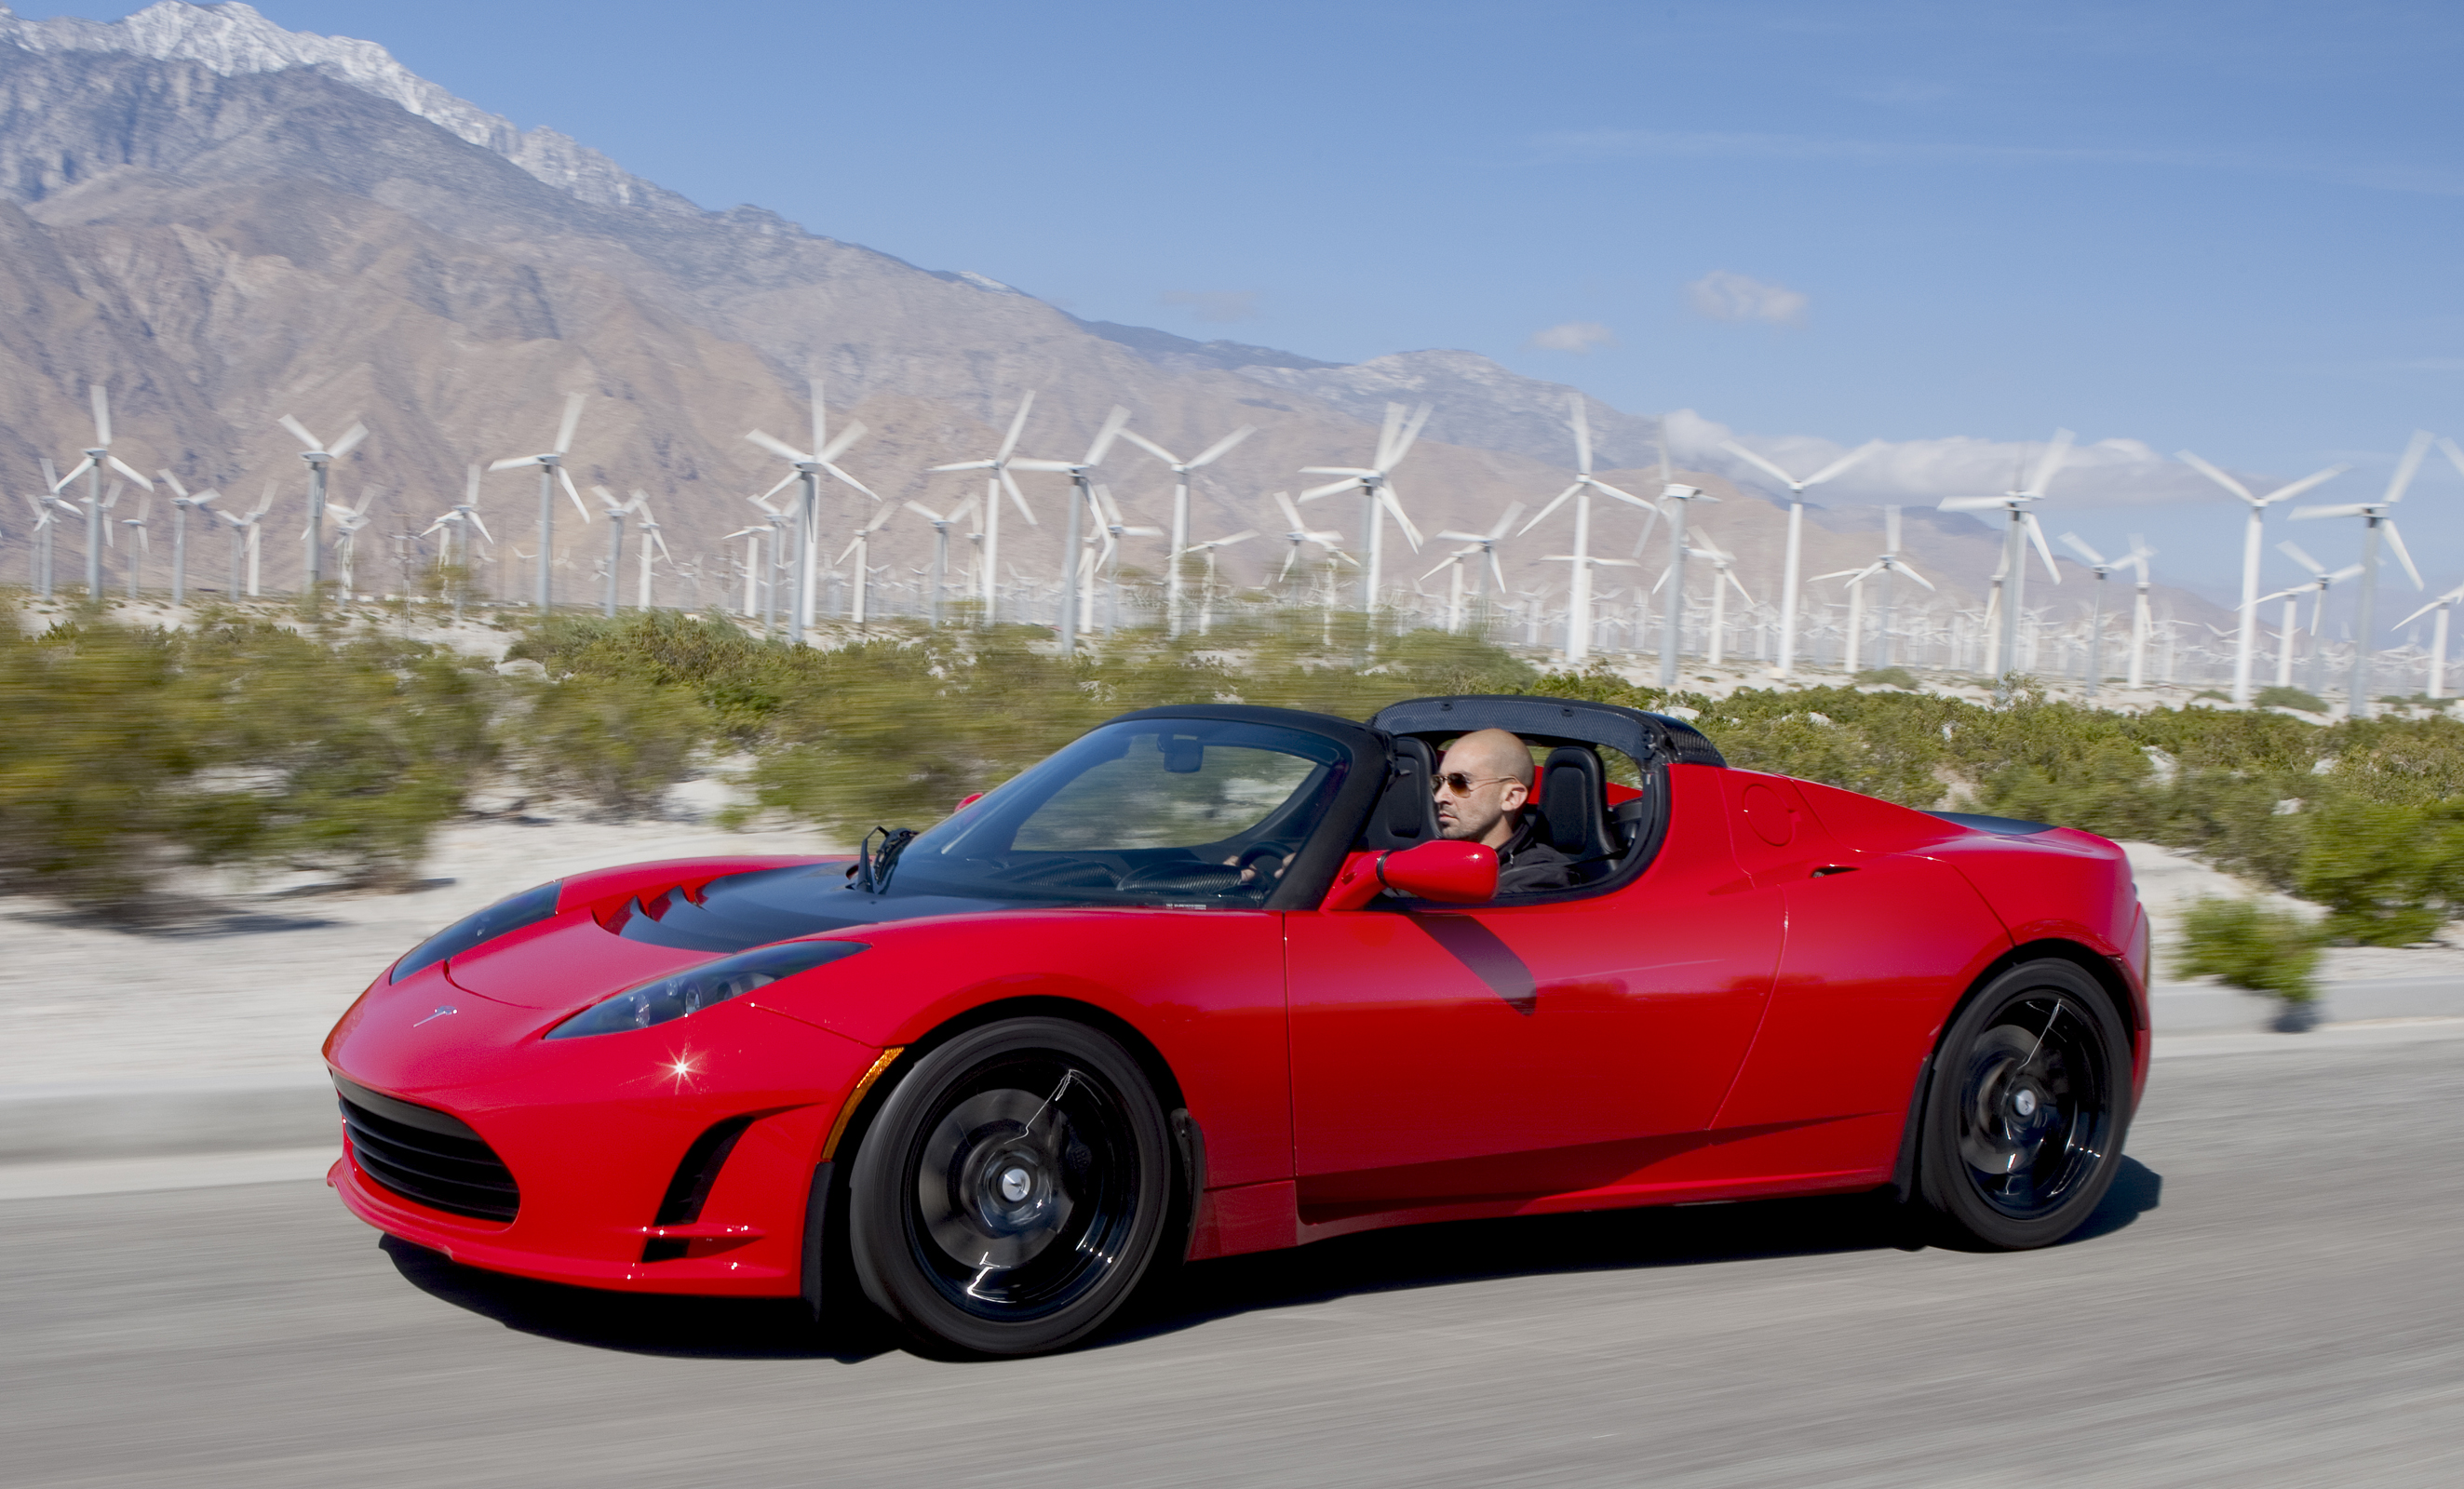 2 Seater Sports Cars for Sale Near Me Best Of Tesla Roadster 2008 Wikipedia